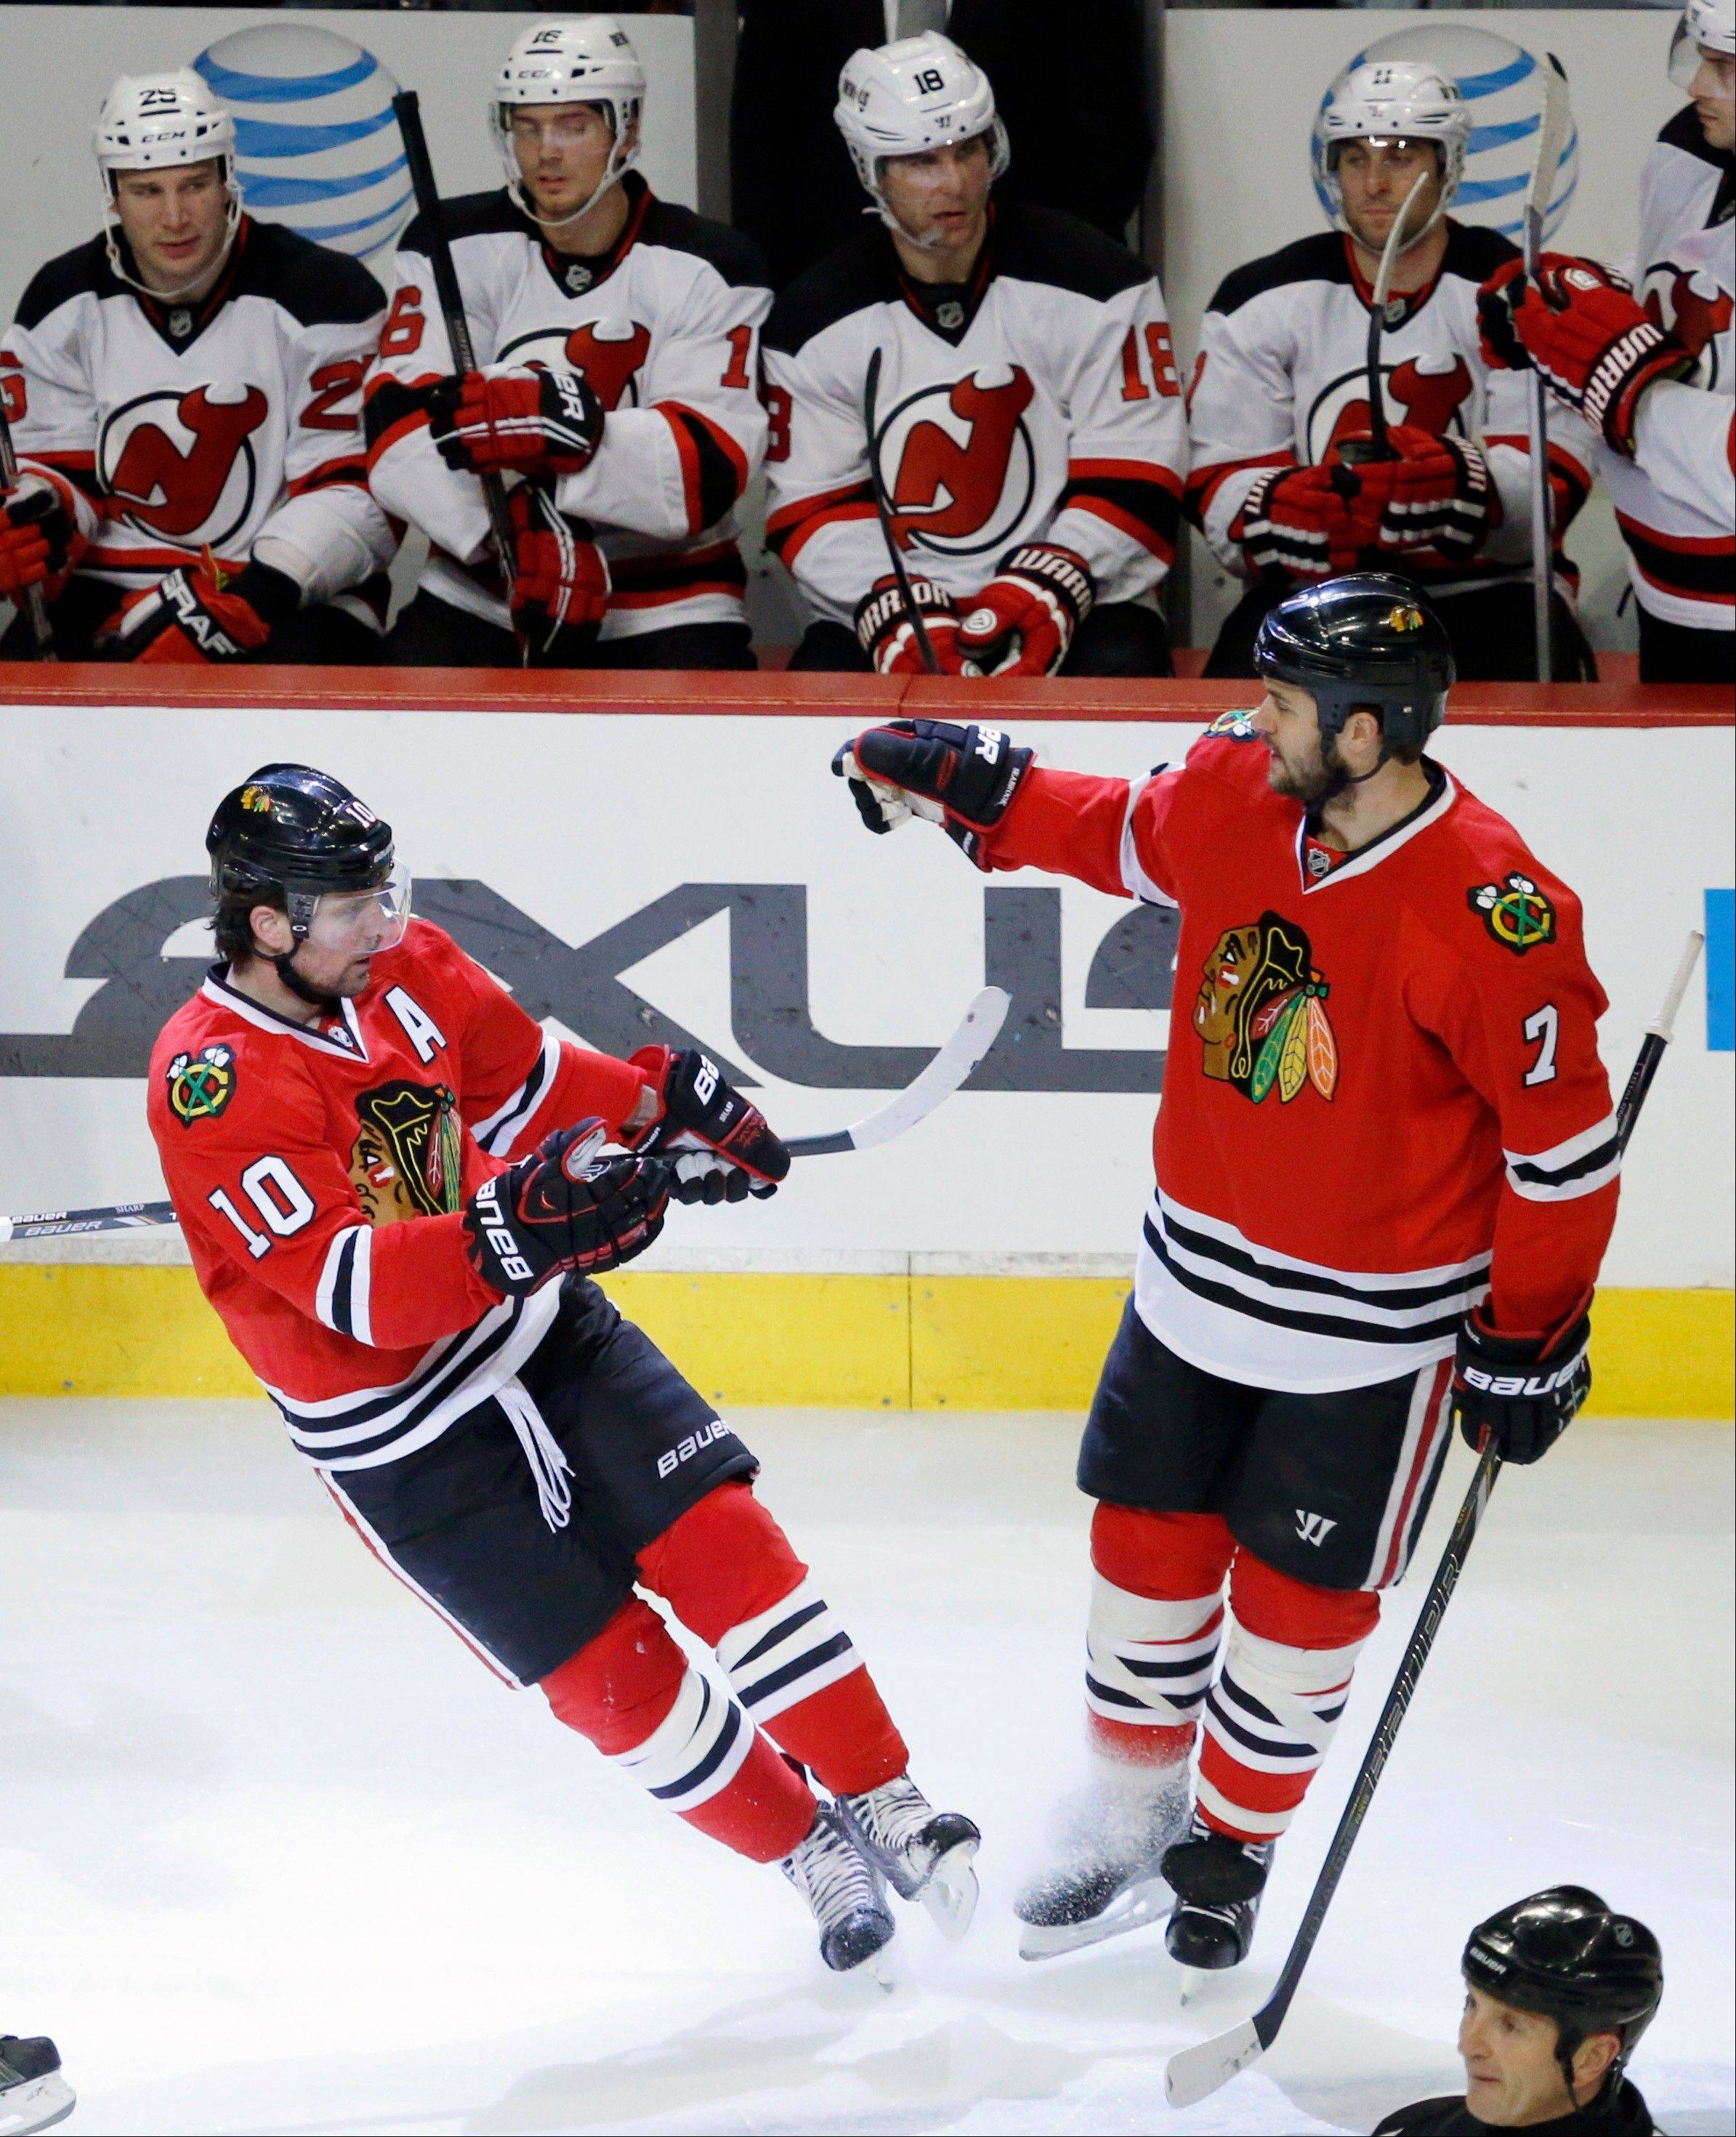 Patrick Sharp, left, celebrates his second goal of the game with Brent Seabrook, giving the Blackhawks some breathing room.